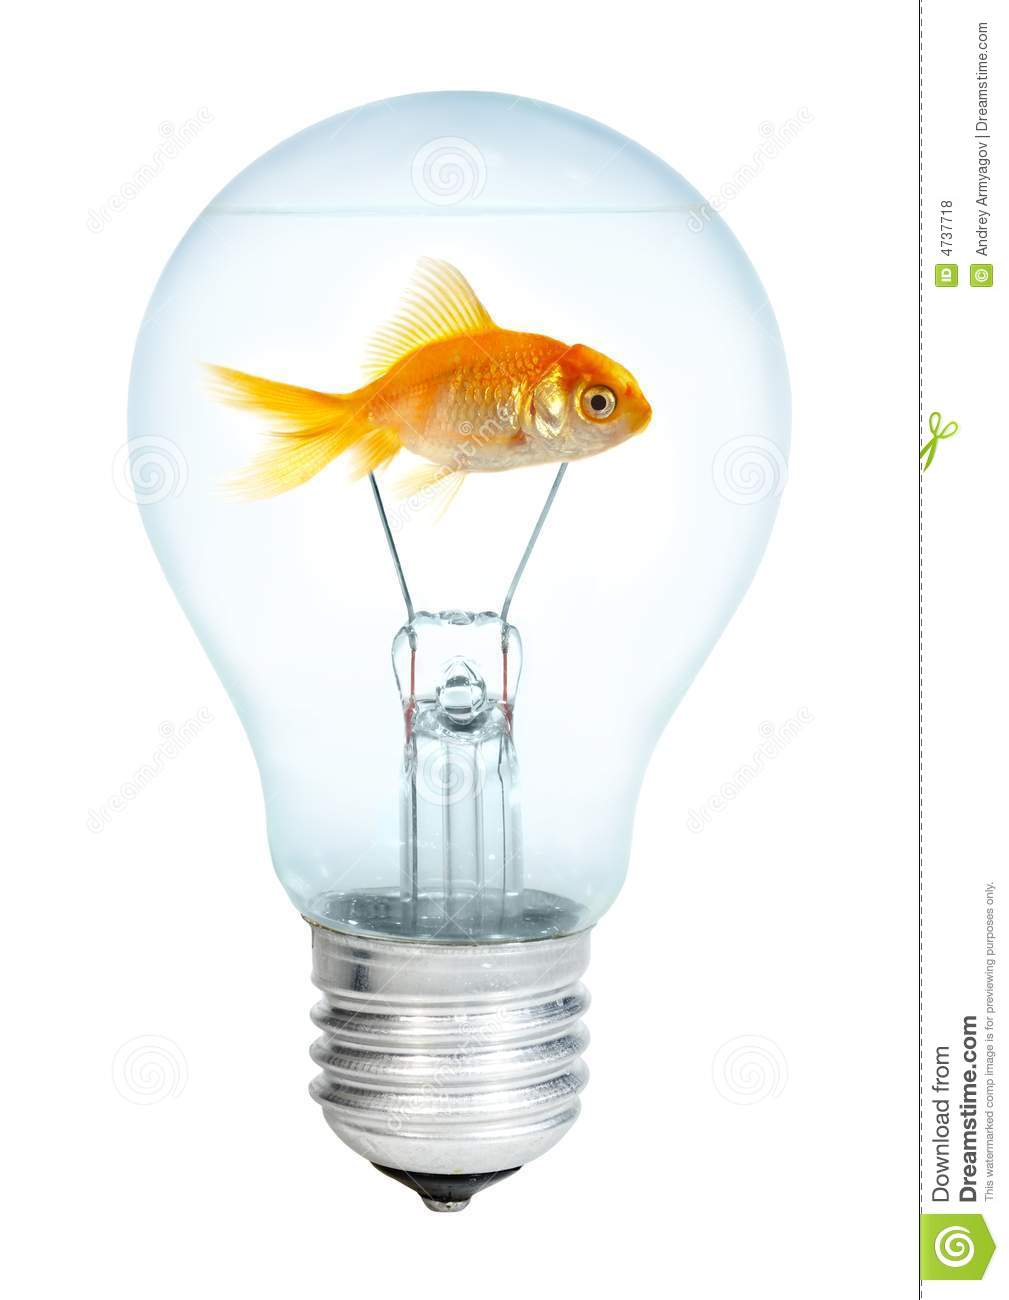 Gold small fish in light bulb